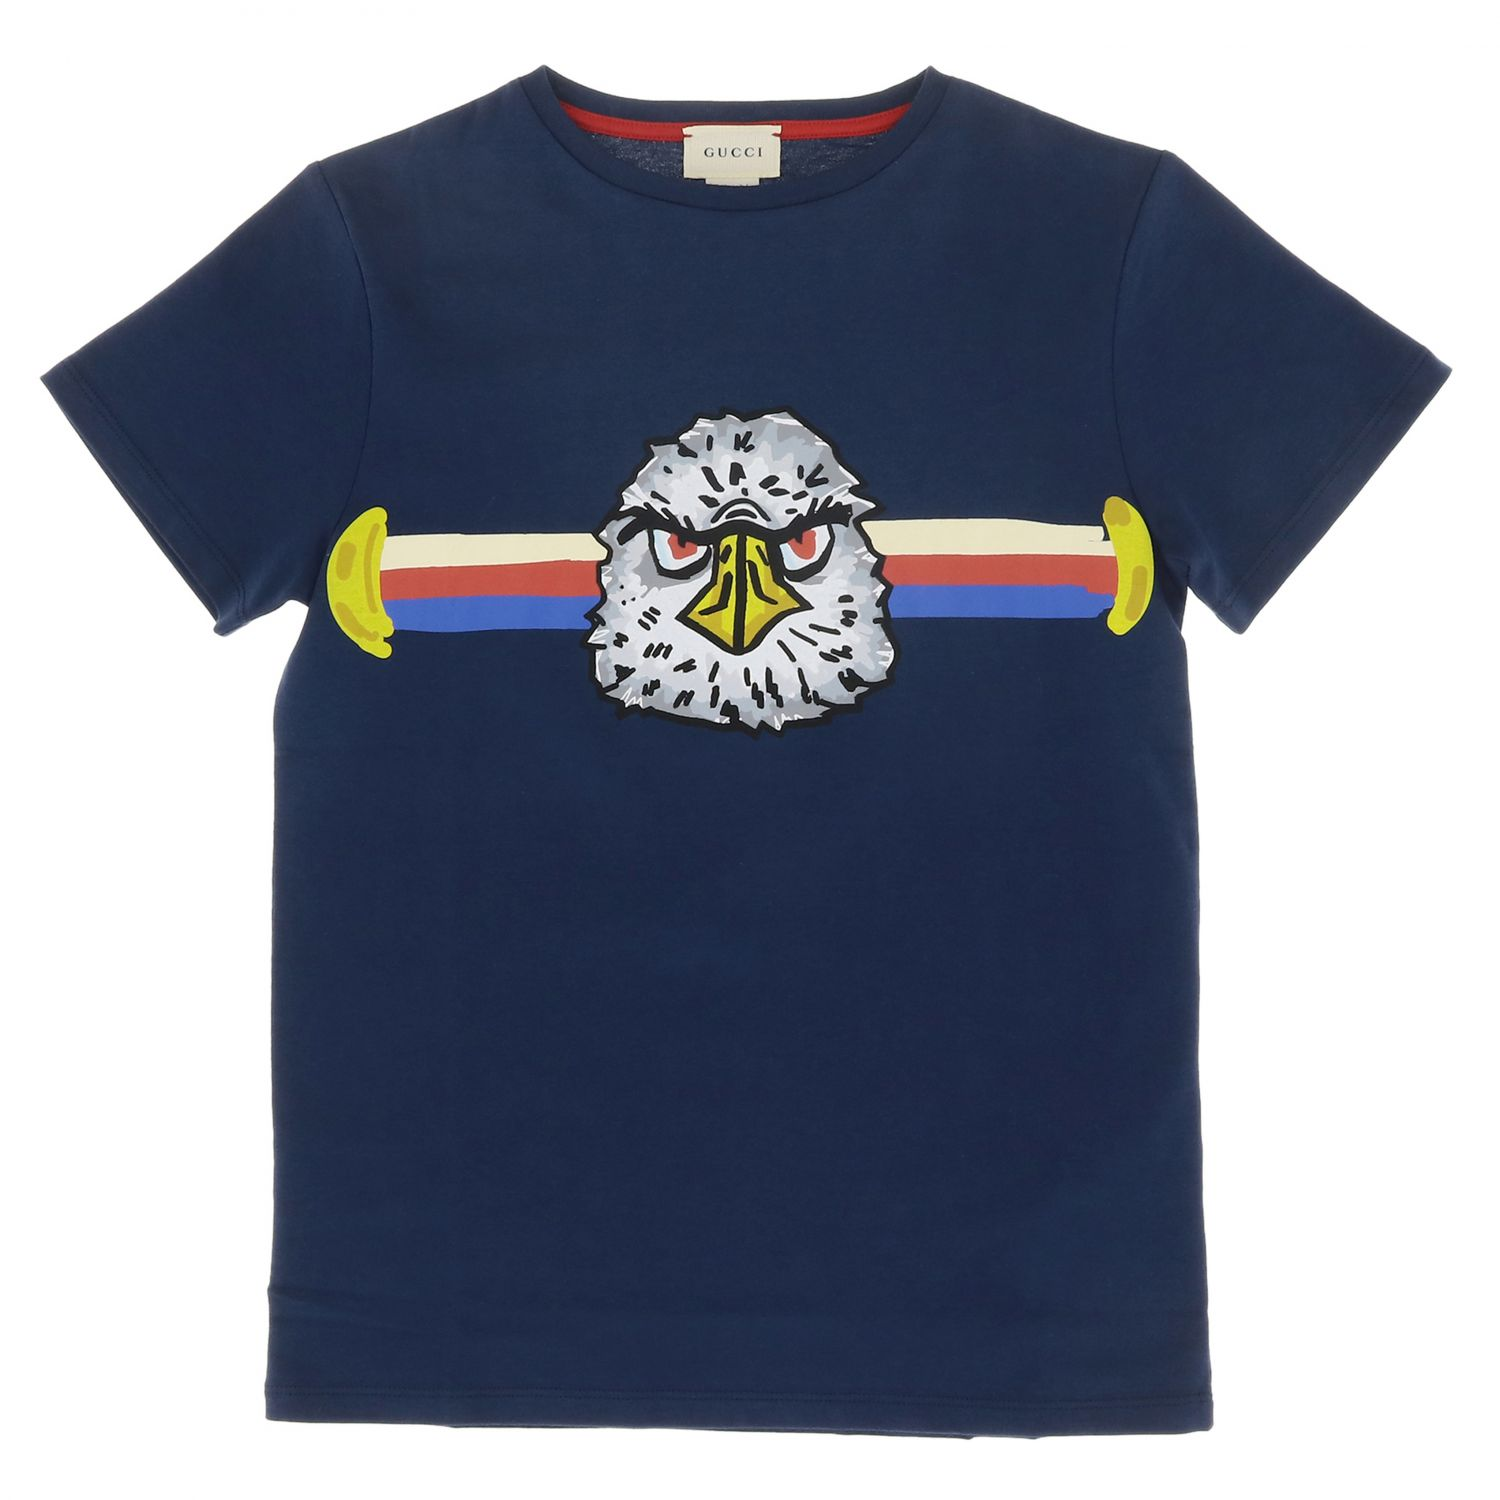 Gucci short-sleeved T-shirt with eagle web maxi pattern blue 1